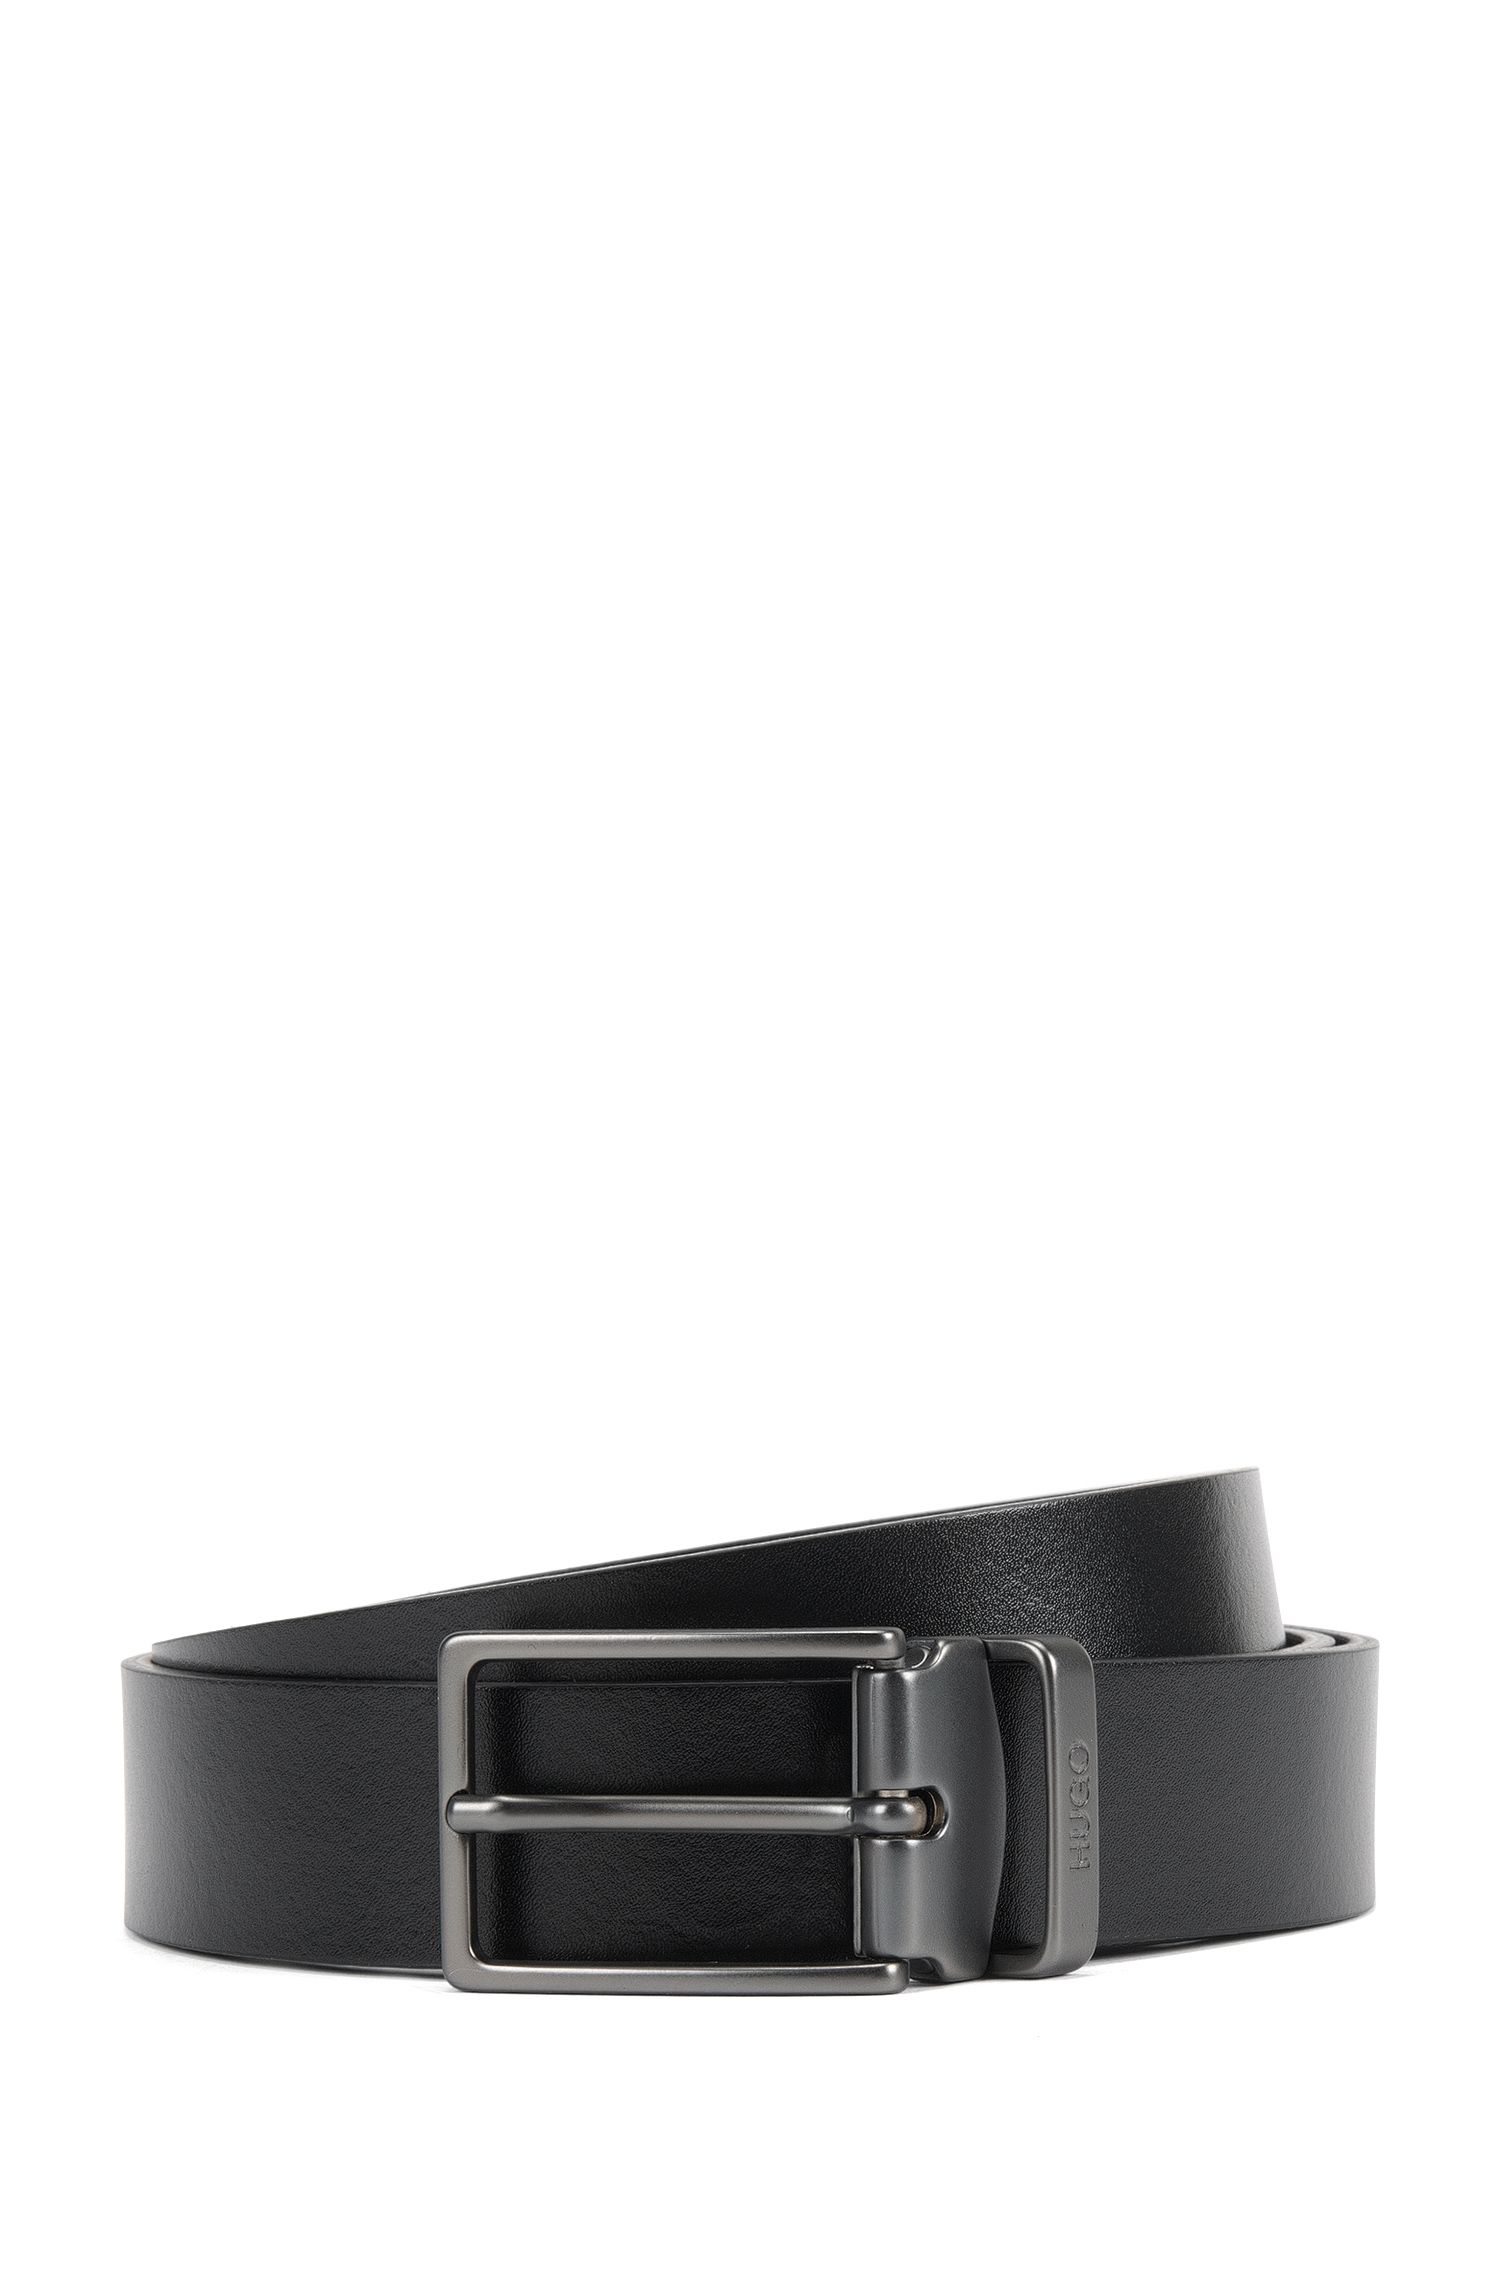 Reversible leather belt with double buckle in matt gunmetal finish